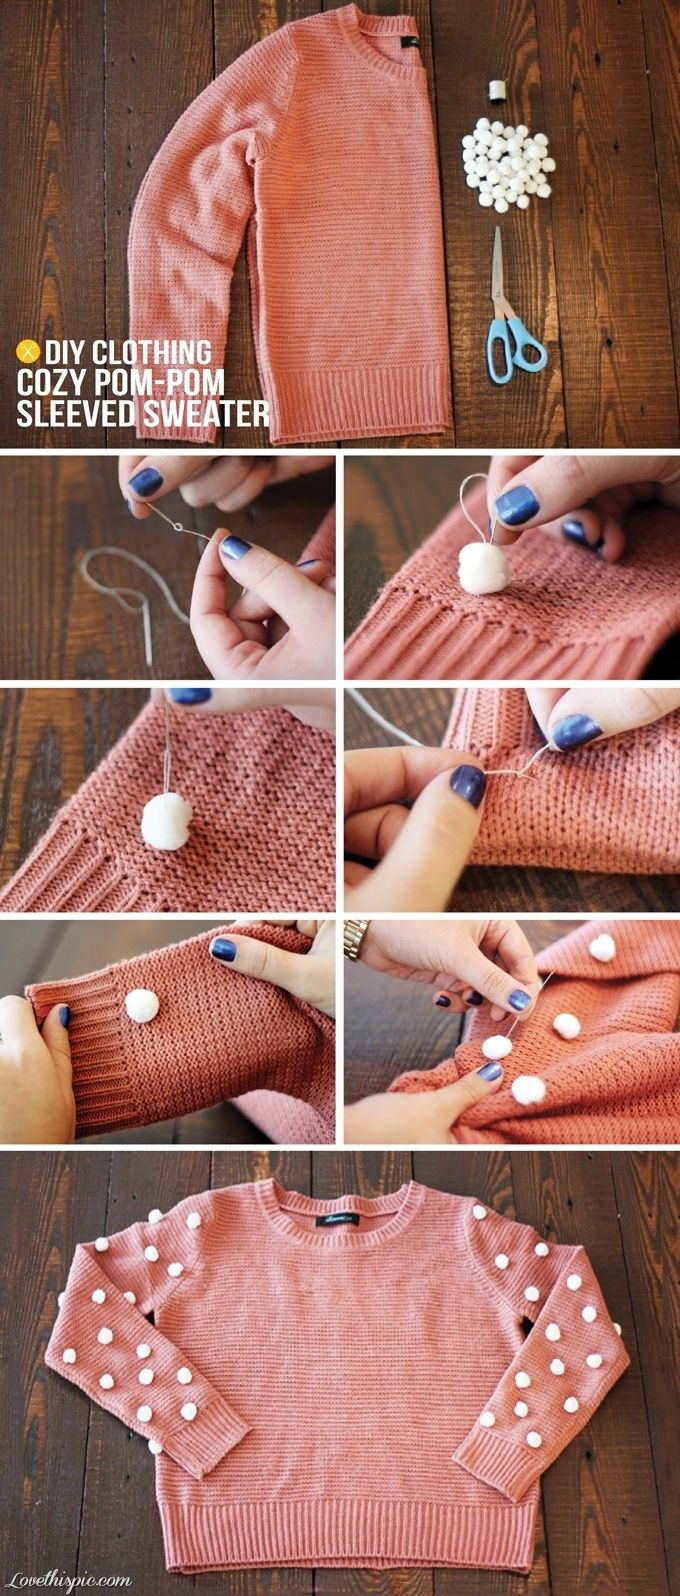 DIY pom-pom sleeve sweater sweater diy diy ideas diy crafts do it yourself diy tips craft clothes diy clothes craft shirt easy crafts diy shirt diy fashion fun diy